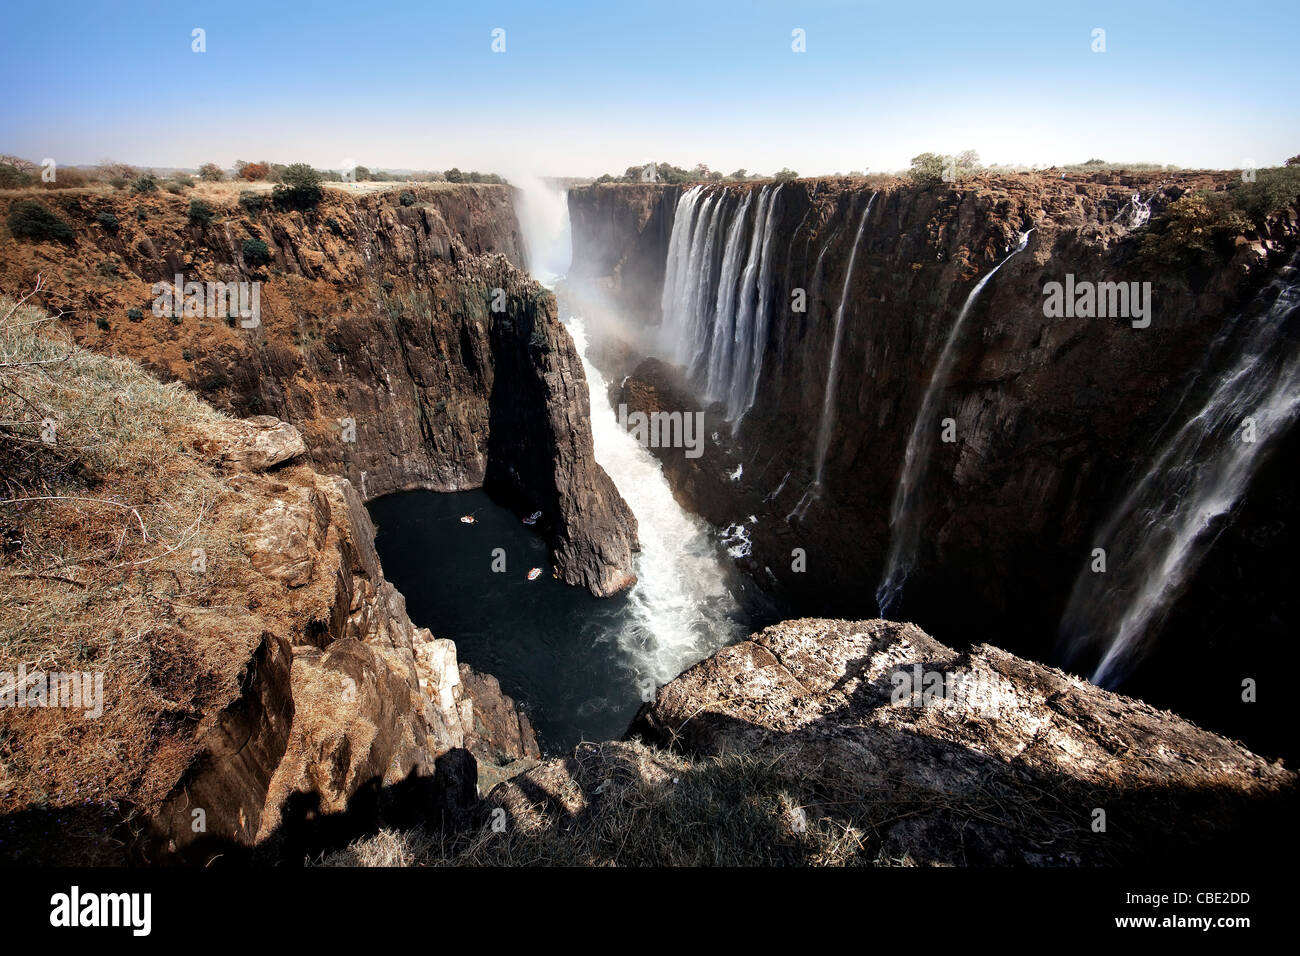 Victoria Falls, Southern Africa - Stock Image